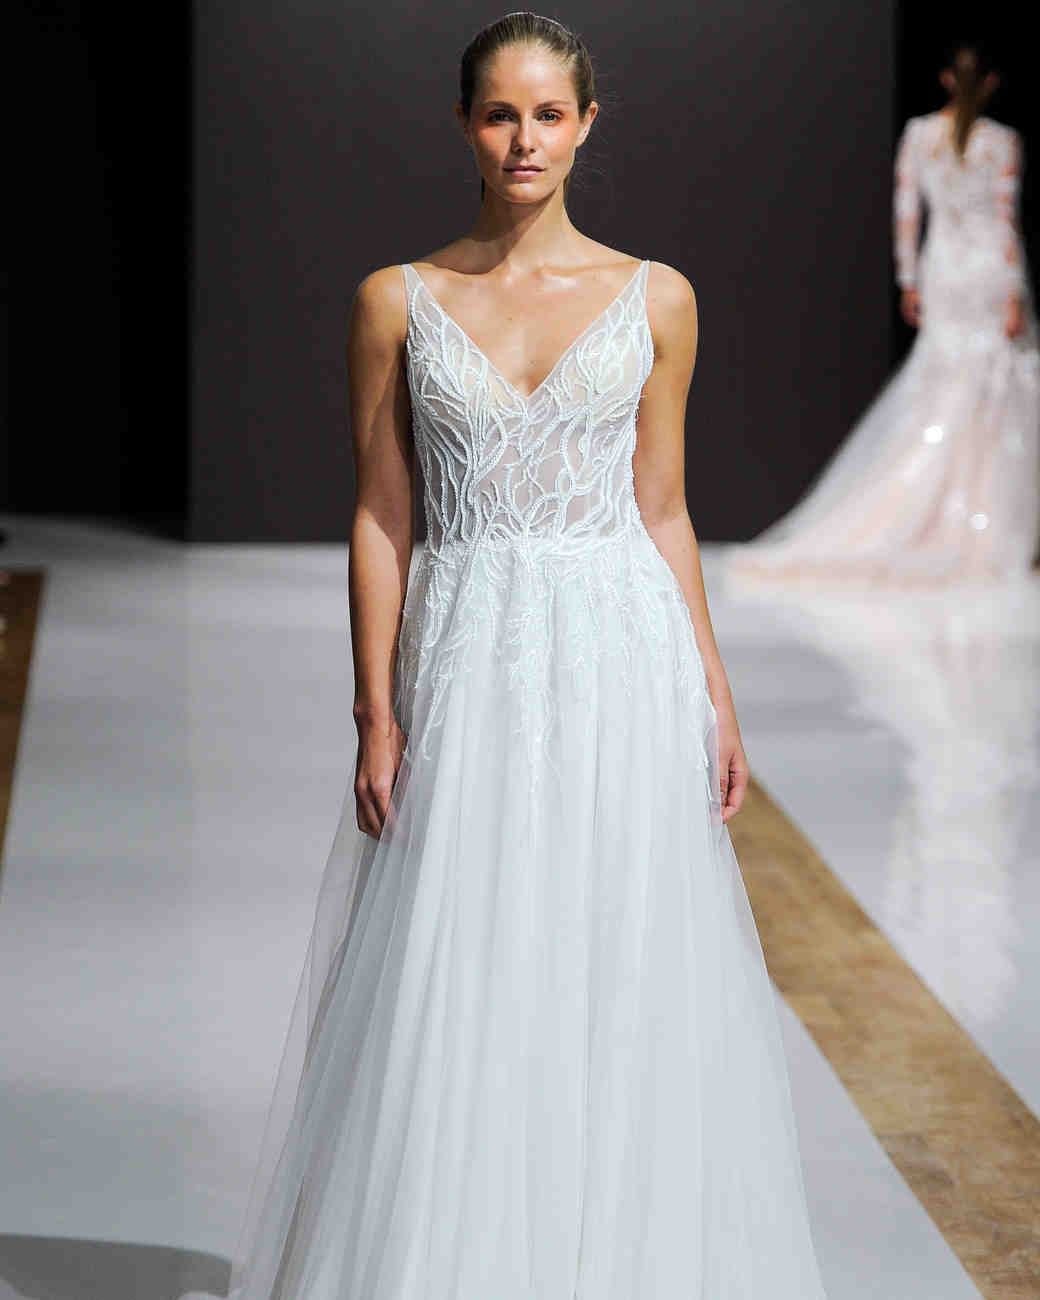 A-line wedding dresses 2018 pictures